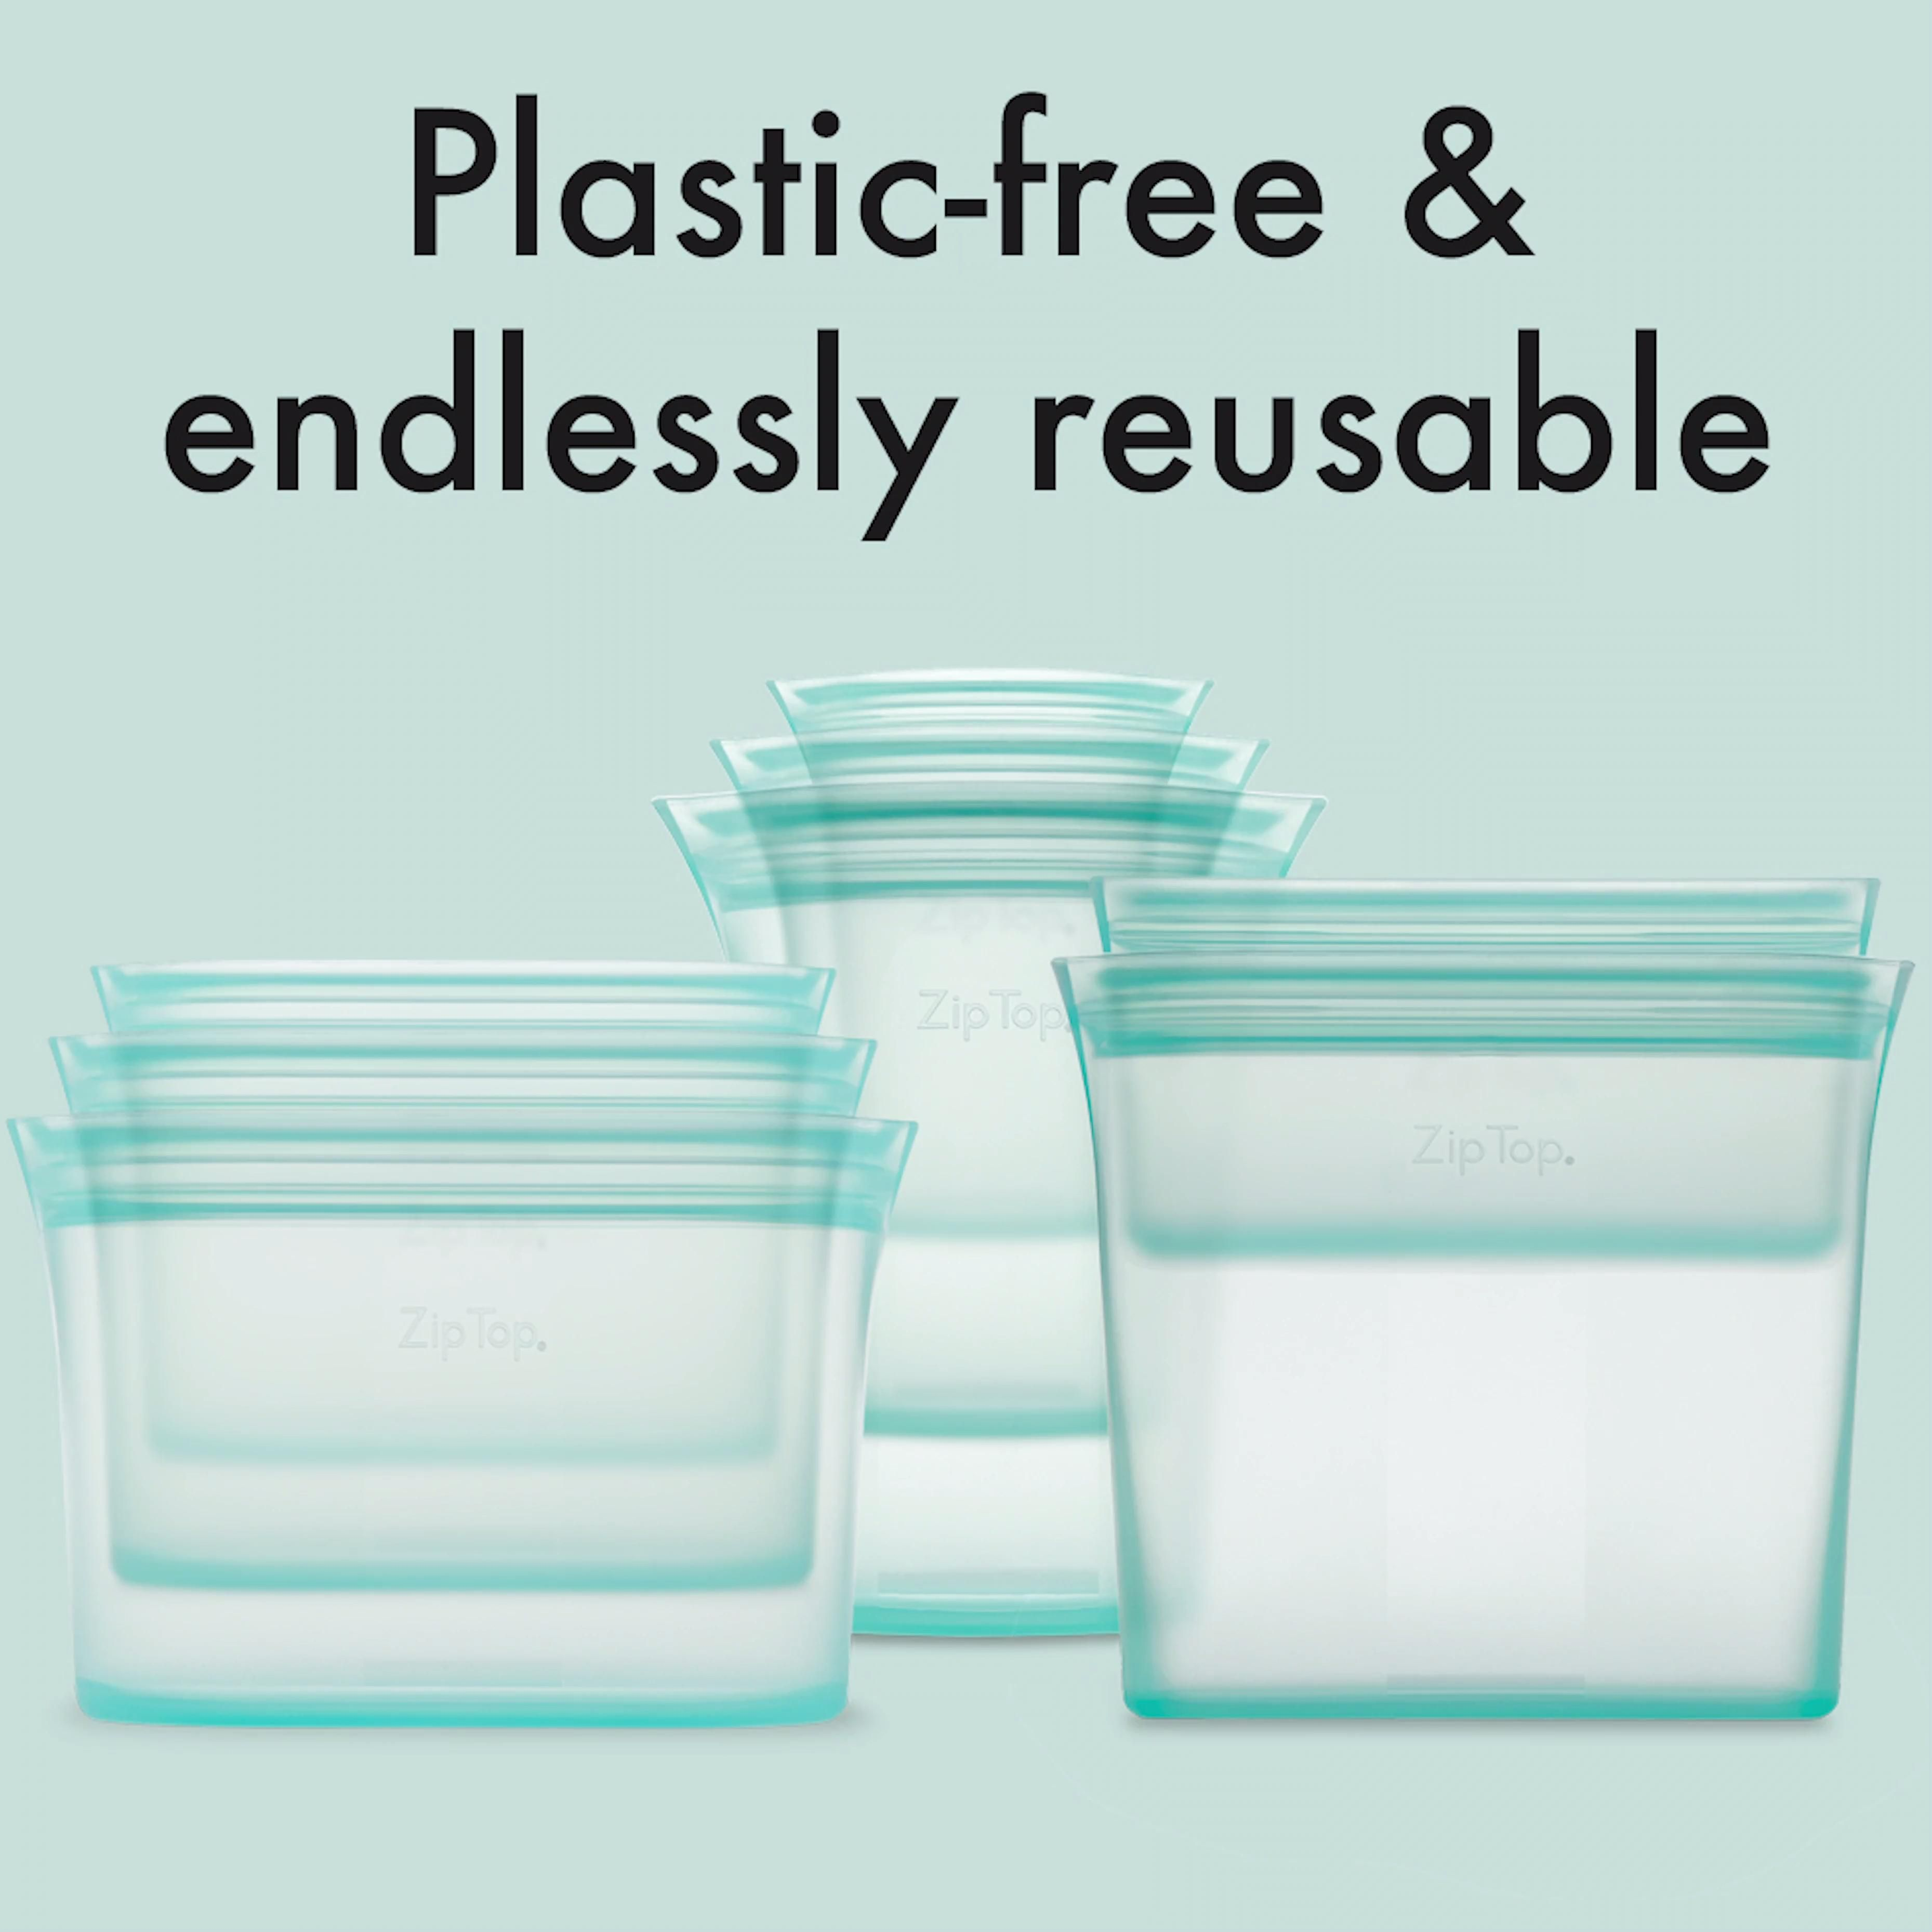 Endlessly reusable, plastic-free 100% silicone containers. They're freezer, microwave and dishwasher safe. And made in the USA!  #ziptop #reusable #silicone #madeintheusa #usa #freezerorganization #springcleaning #mothersdaygift #nolids #stasherbag #ziptopcontainers